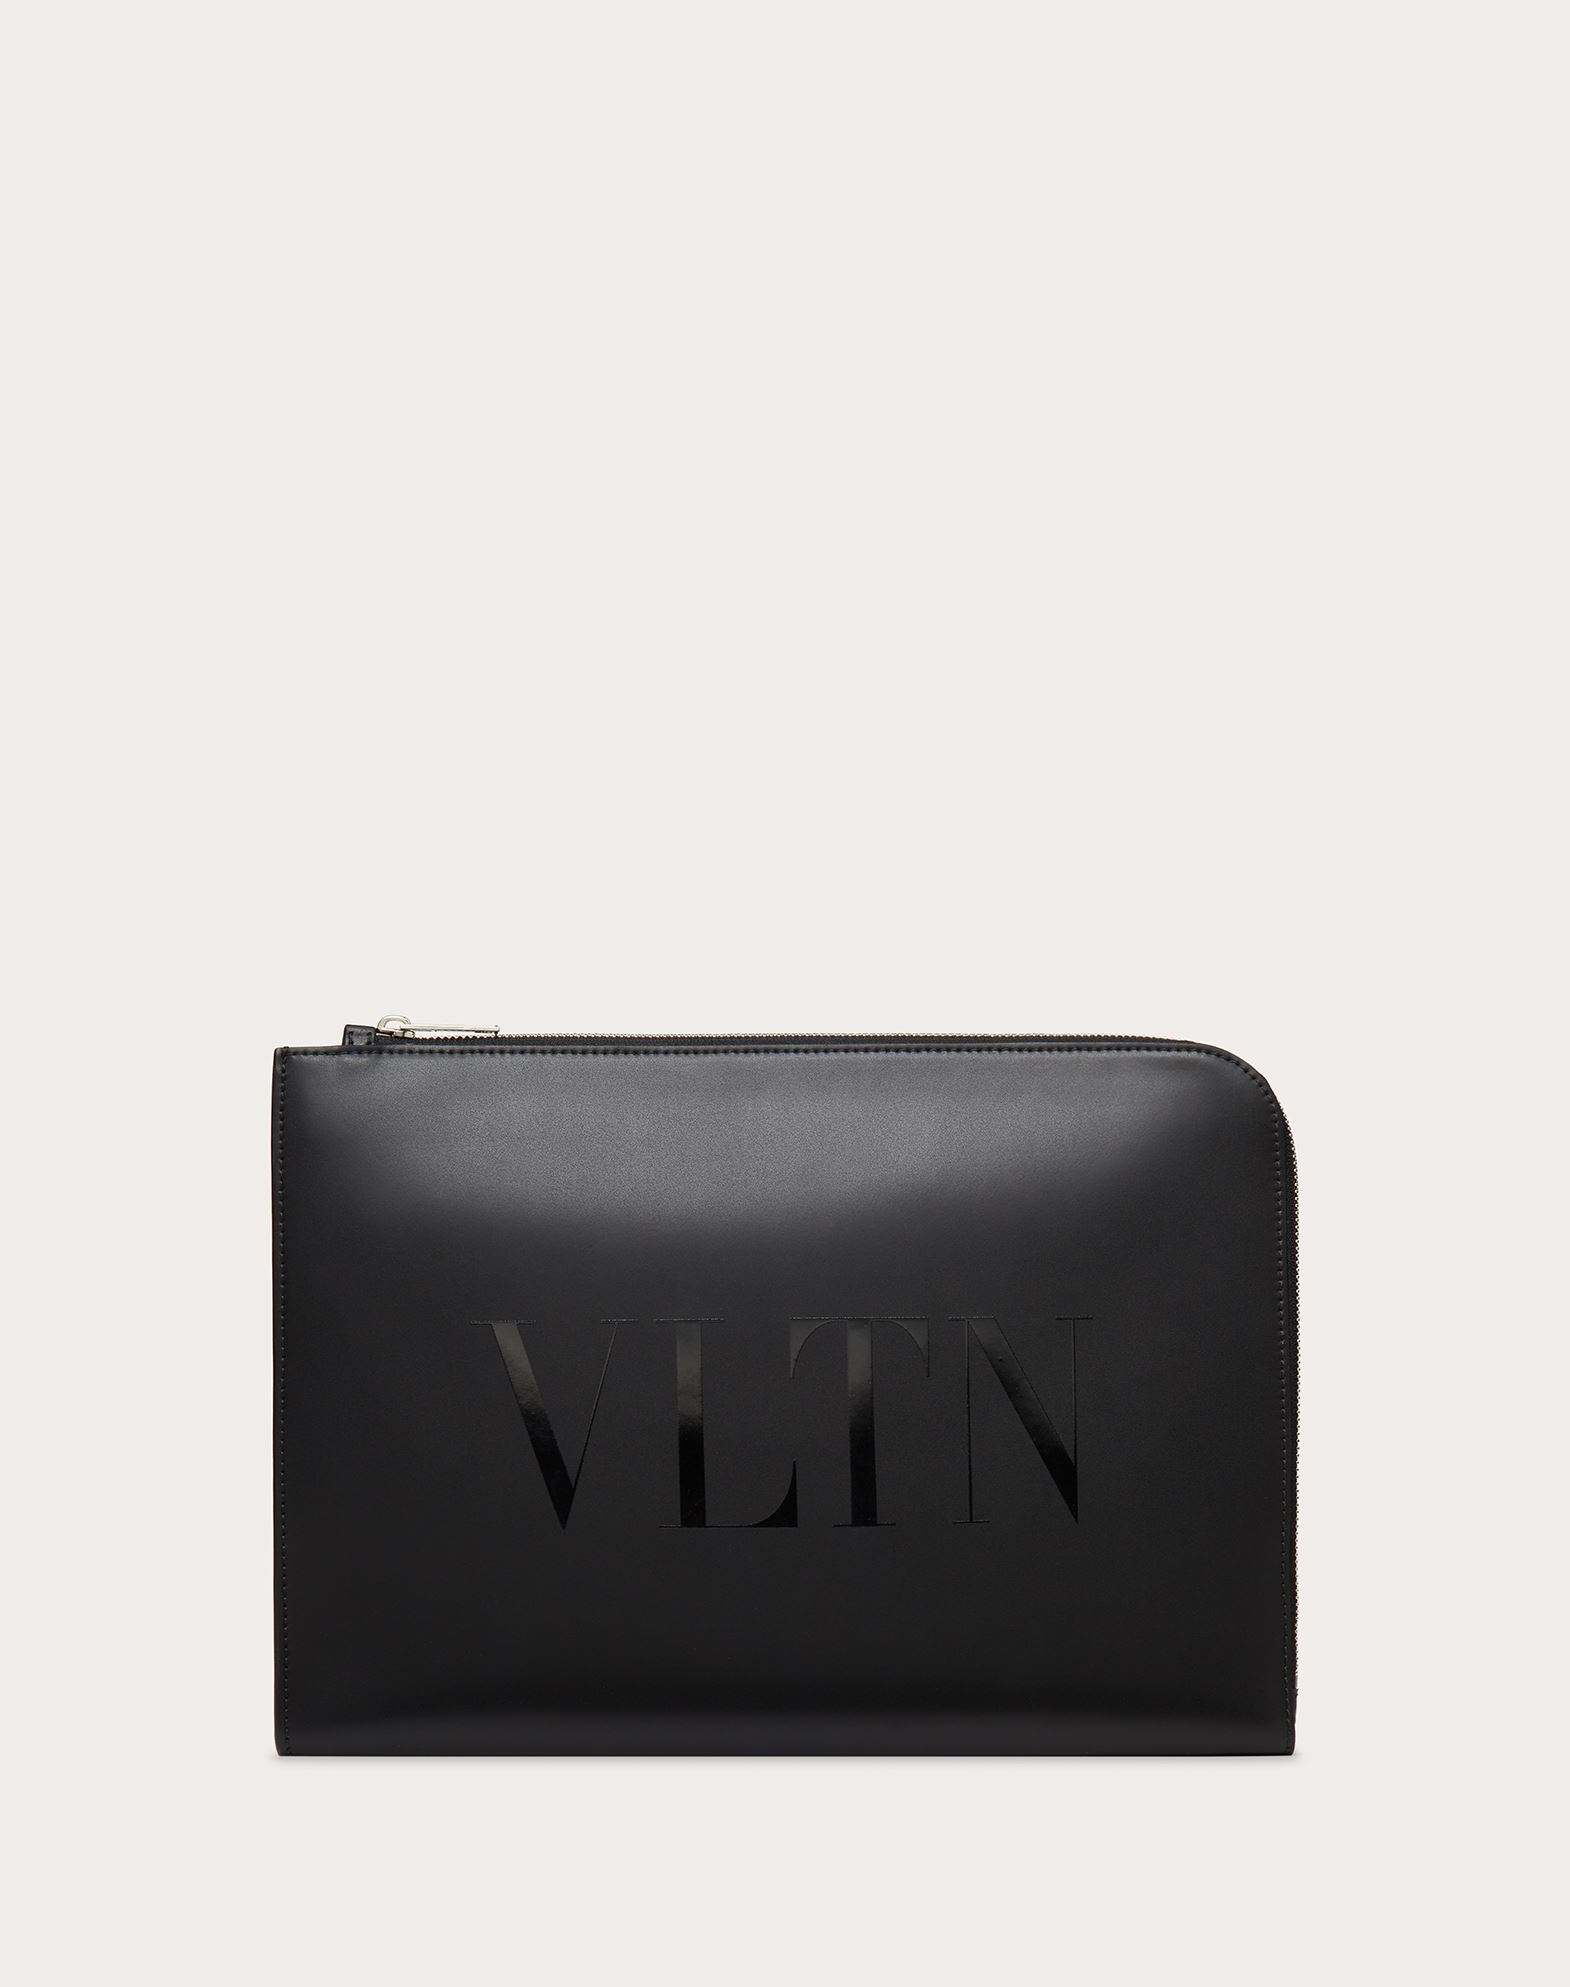 VLTN Leather Briefcase